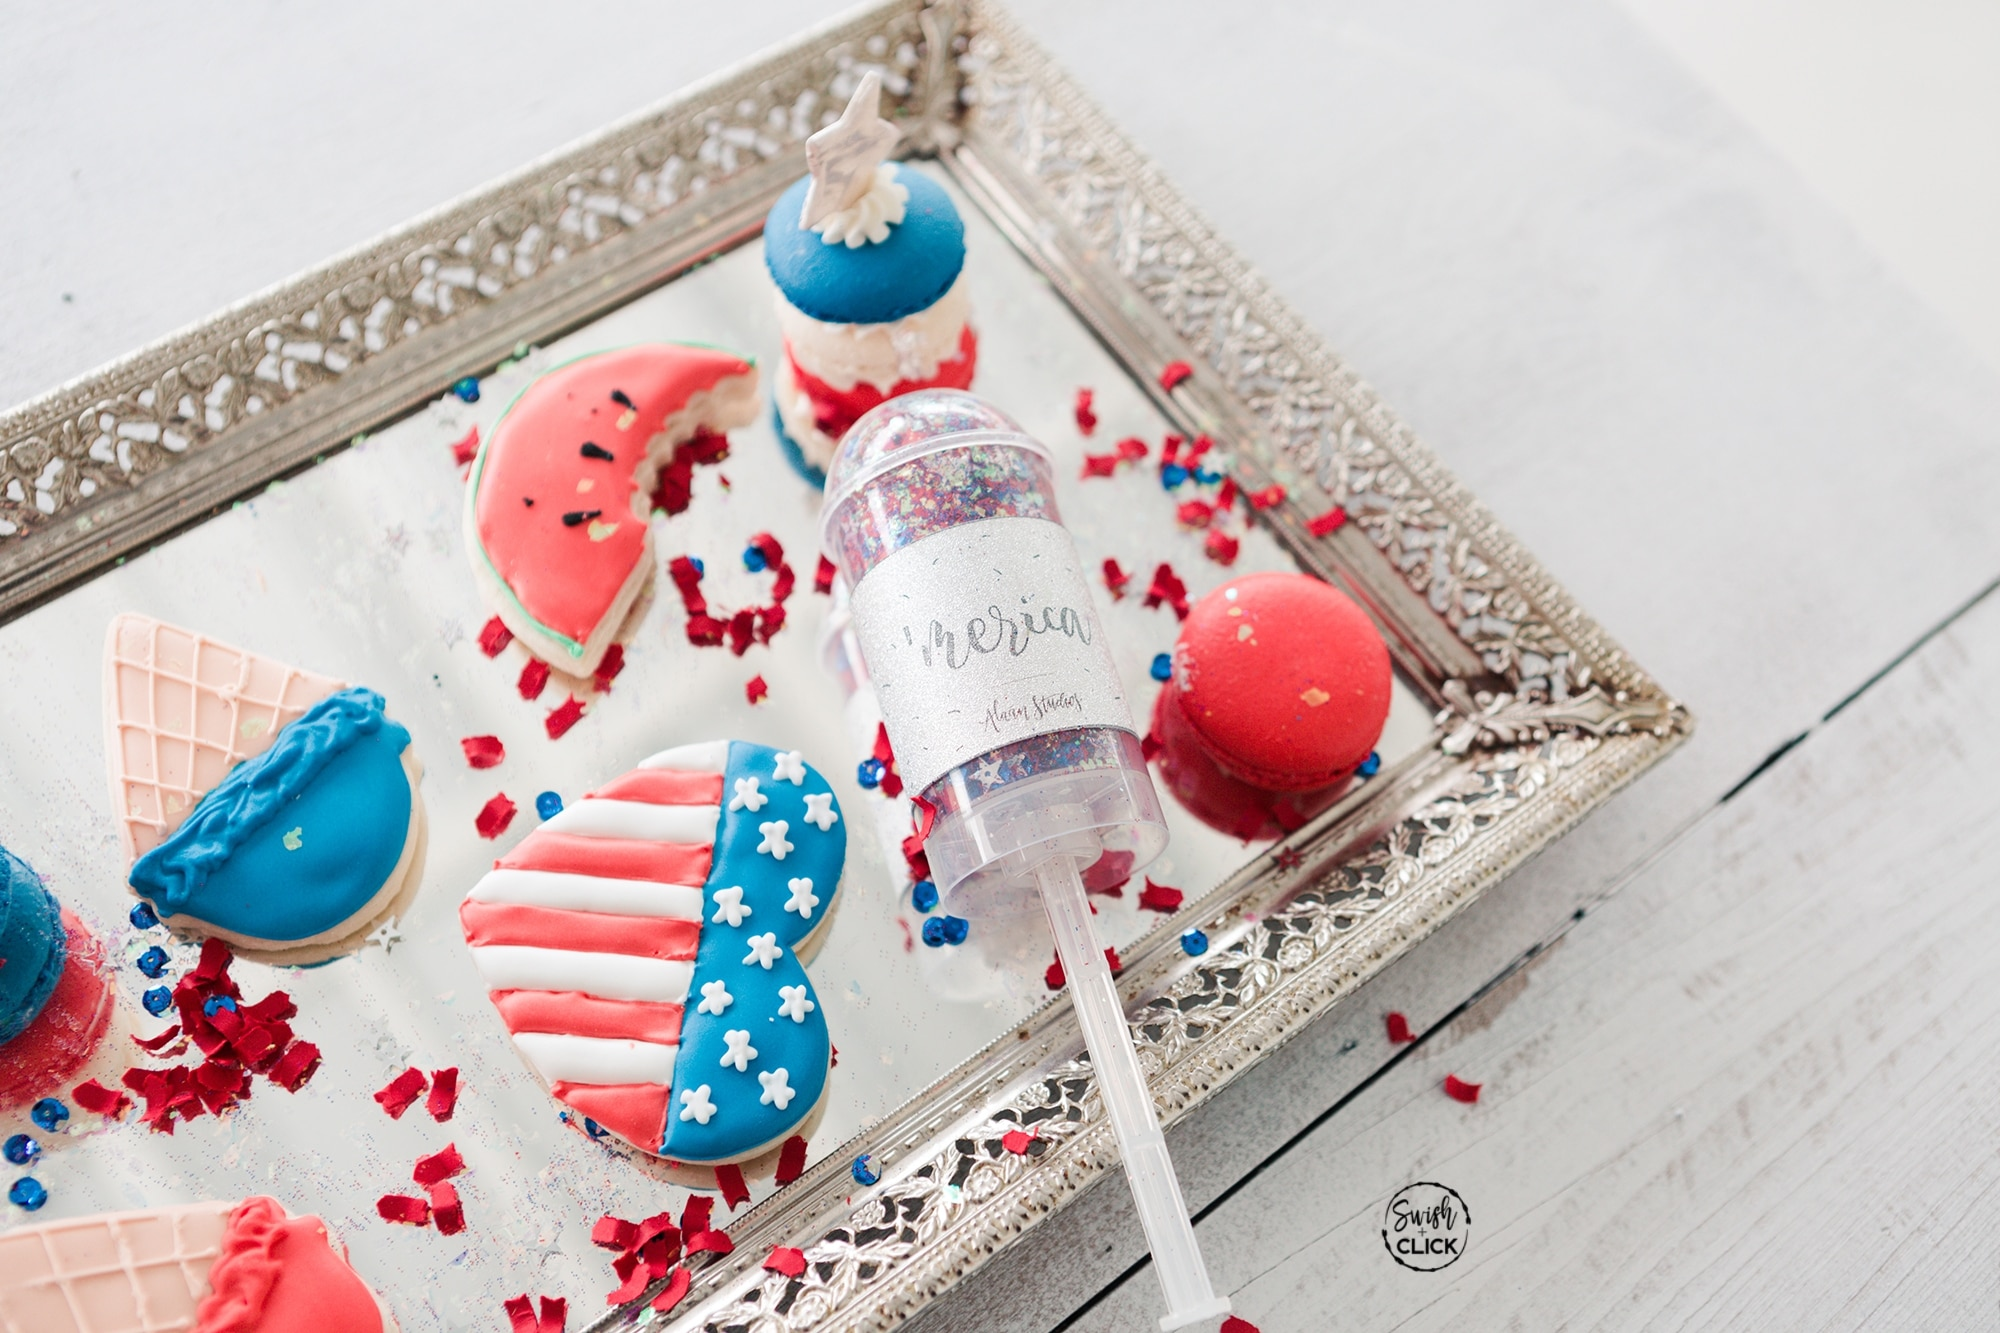 How to Have a July 4th Wedding that's Glamorous